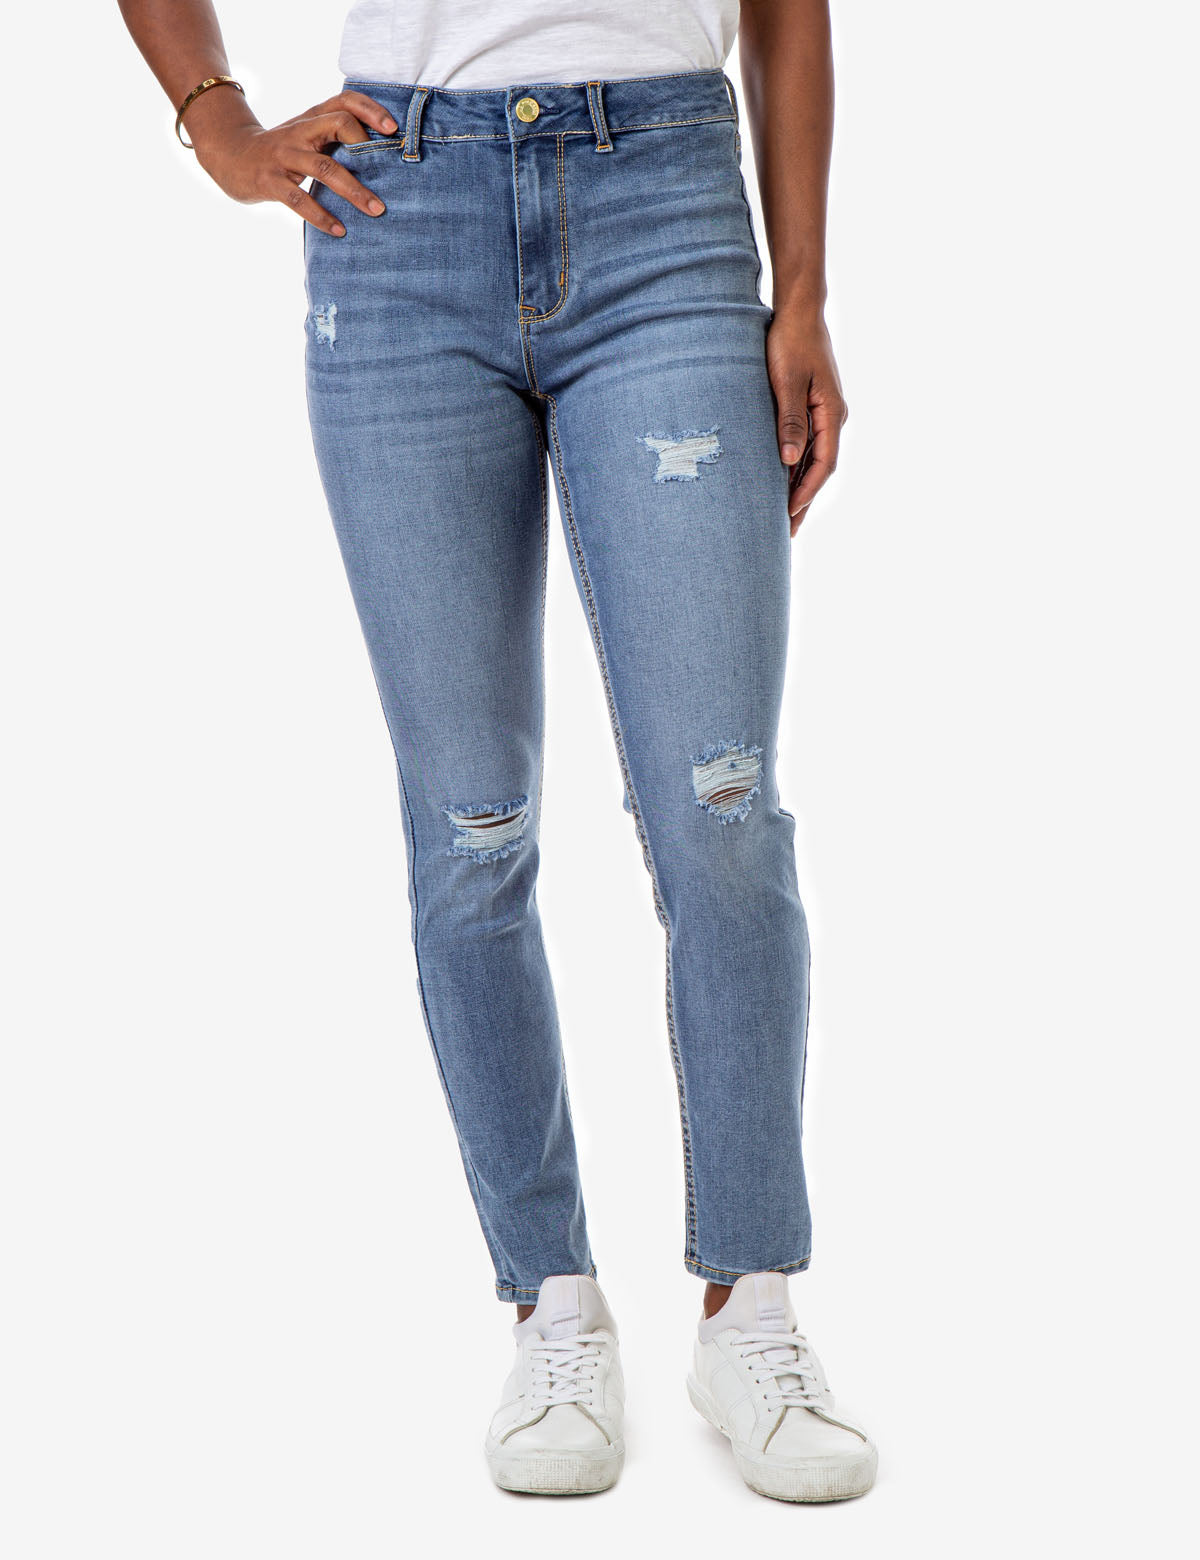 REPREVE® HIGH RISE DESTRUCTED JEANS - U.S. Polo Assn.